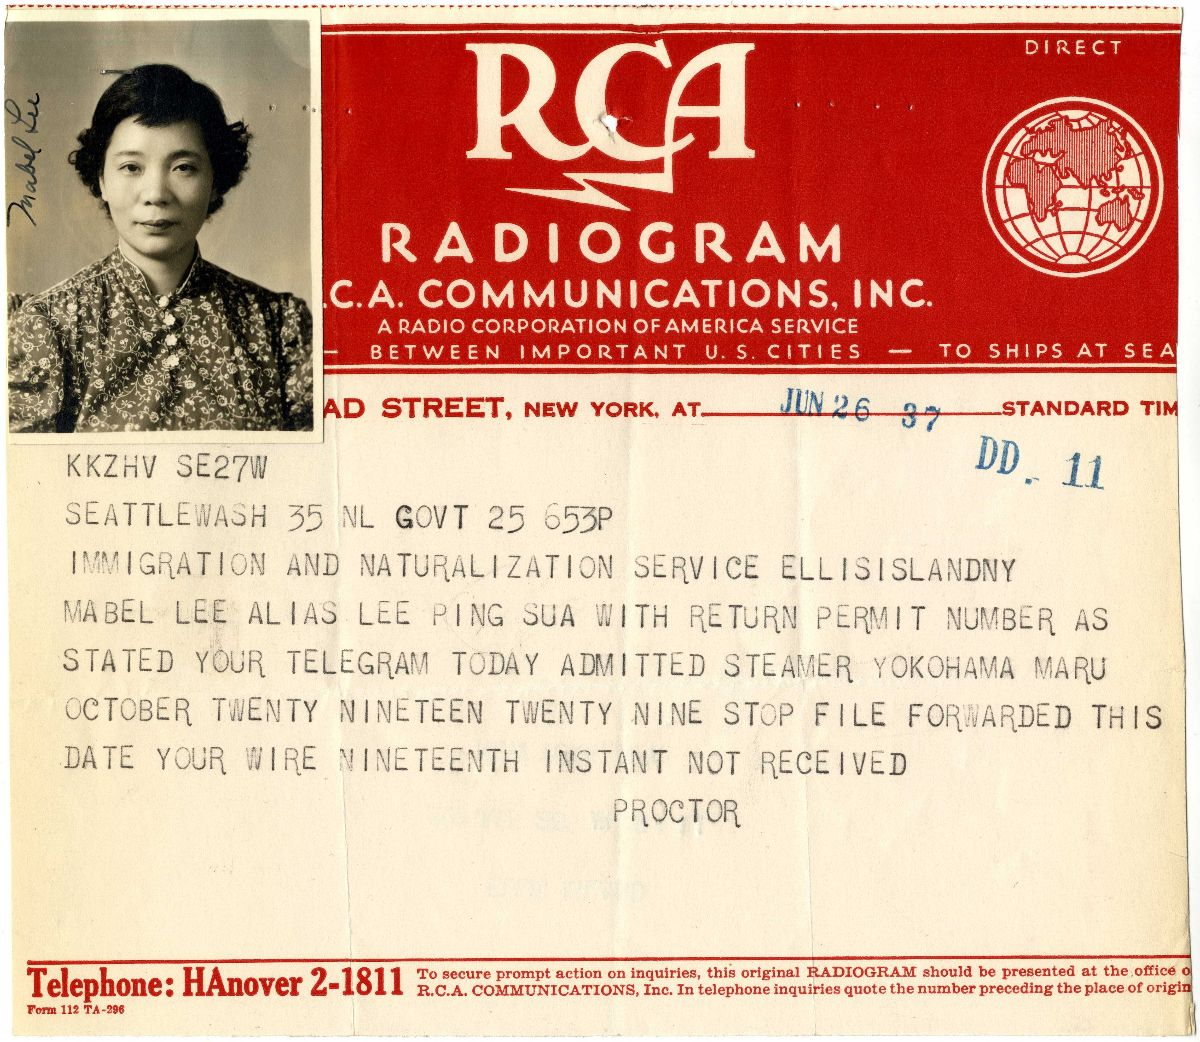 Radiogram concerning Mabel Ping-Hua Lee. The image featured the RCA logo at the top with a picture of Lee in the upper left hand corner.